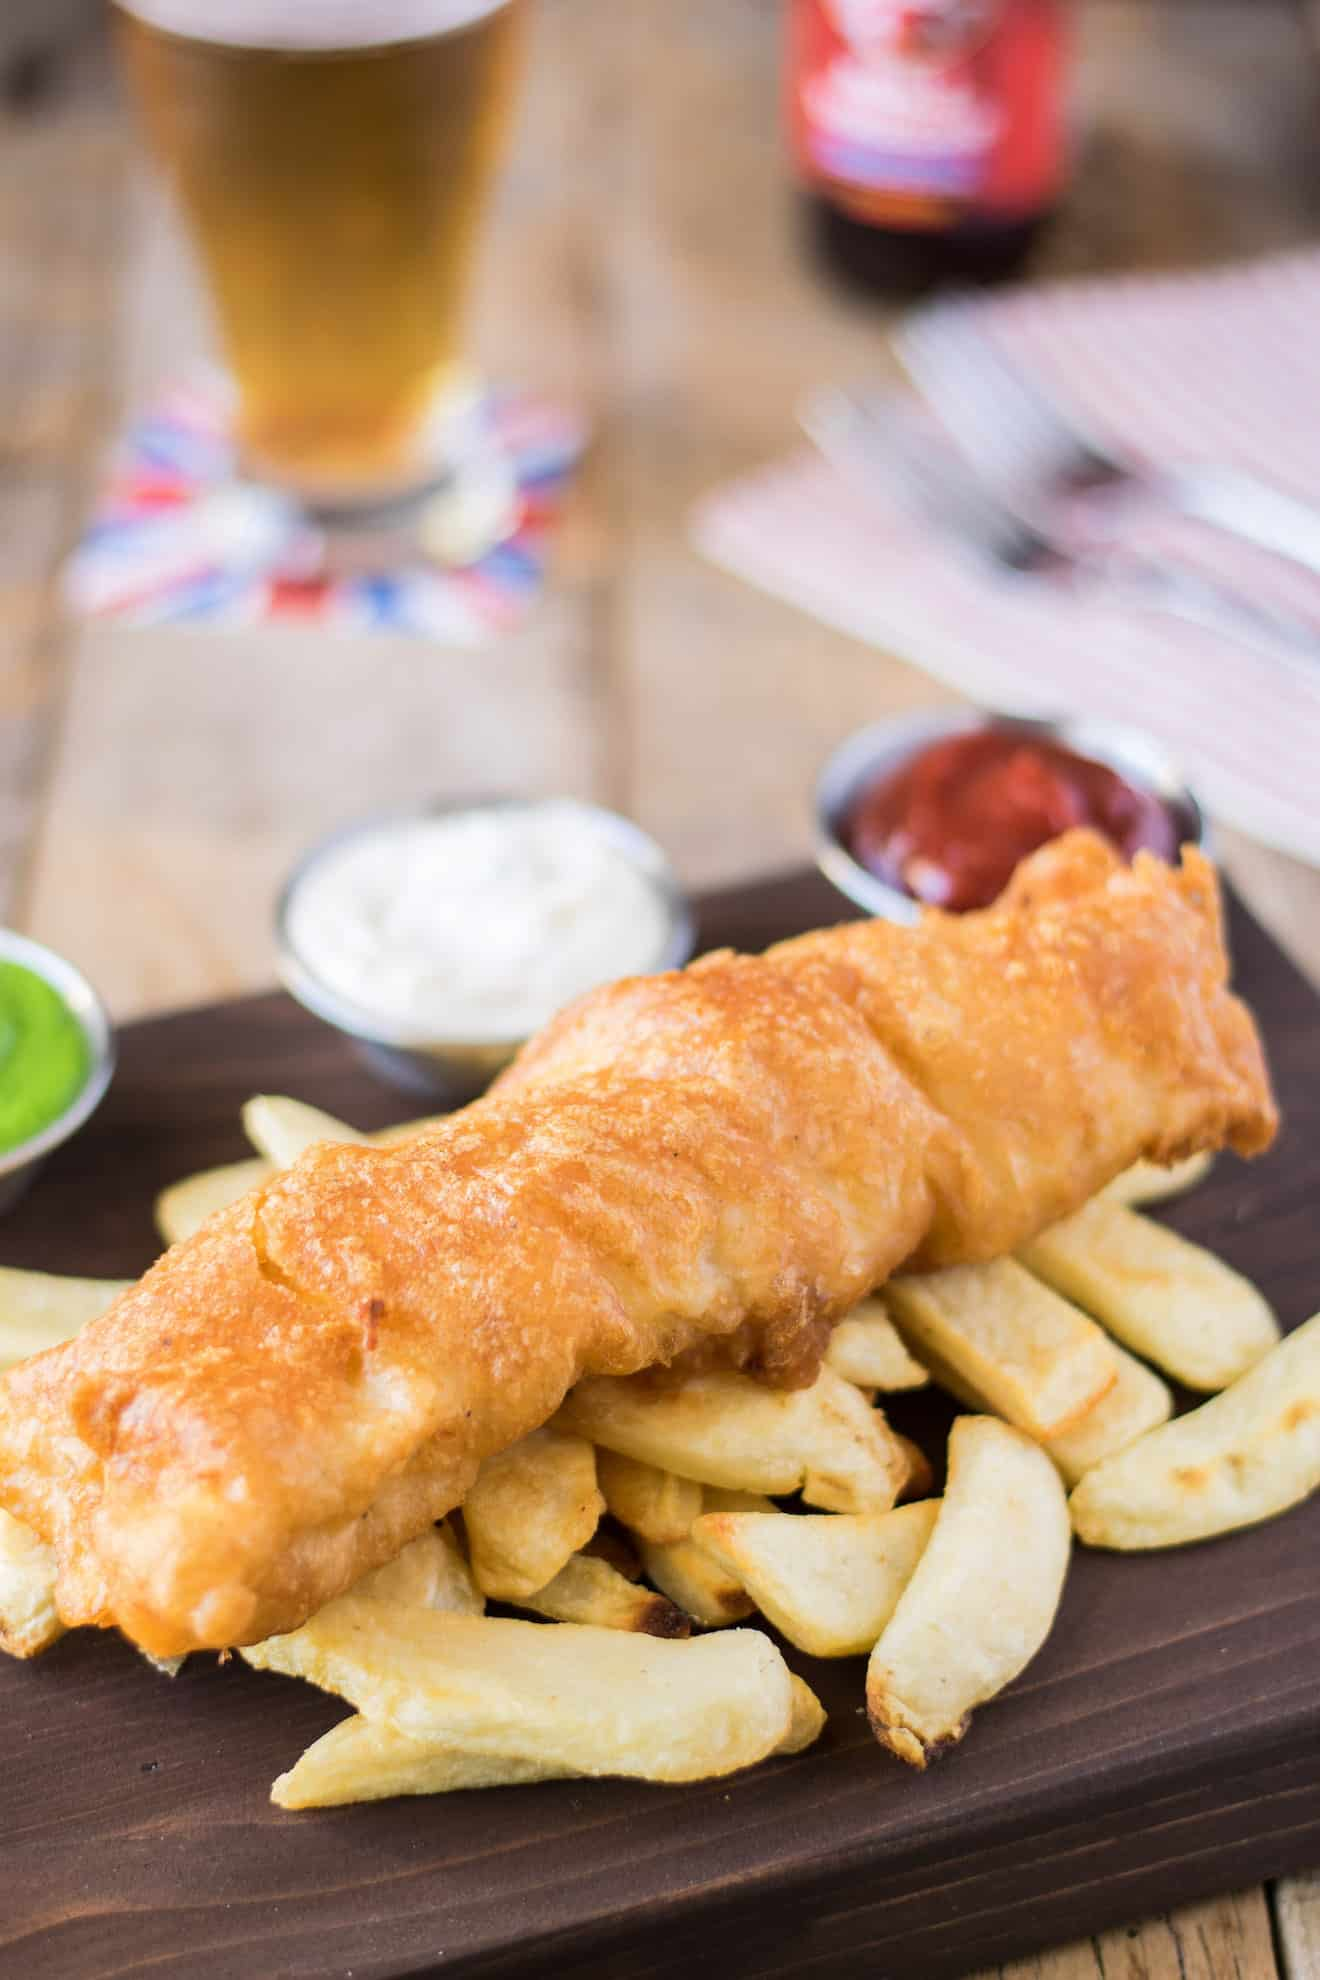 A large piece of fried cod laying on top of chips/French fries